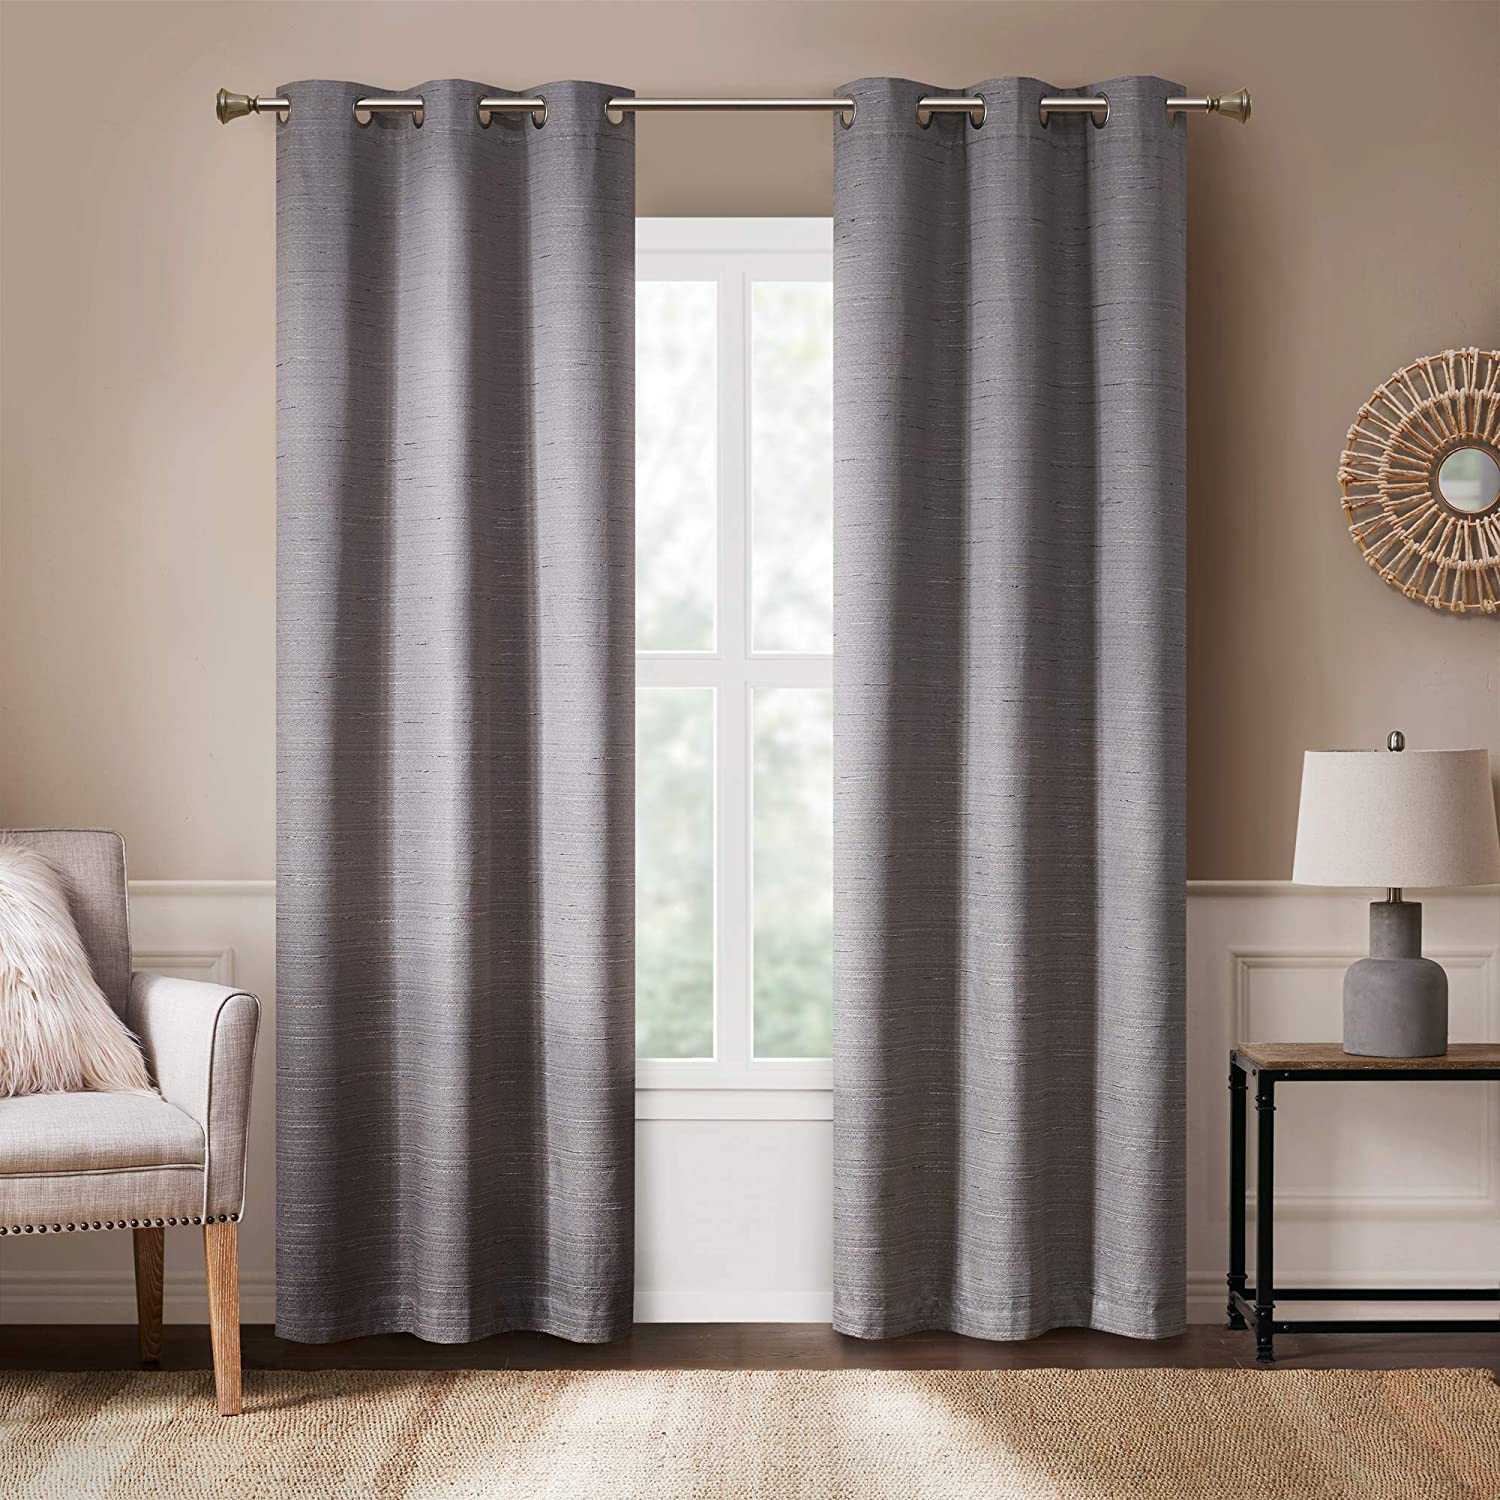 Hyde Lane Modern Farmhouse Curtains for Living Room   Rustic Style Curtain  for Bedroom Window   Grasscloth Faux Linen   Room Darkening Grommet Top ...